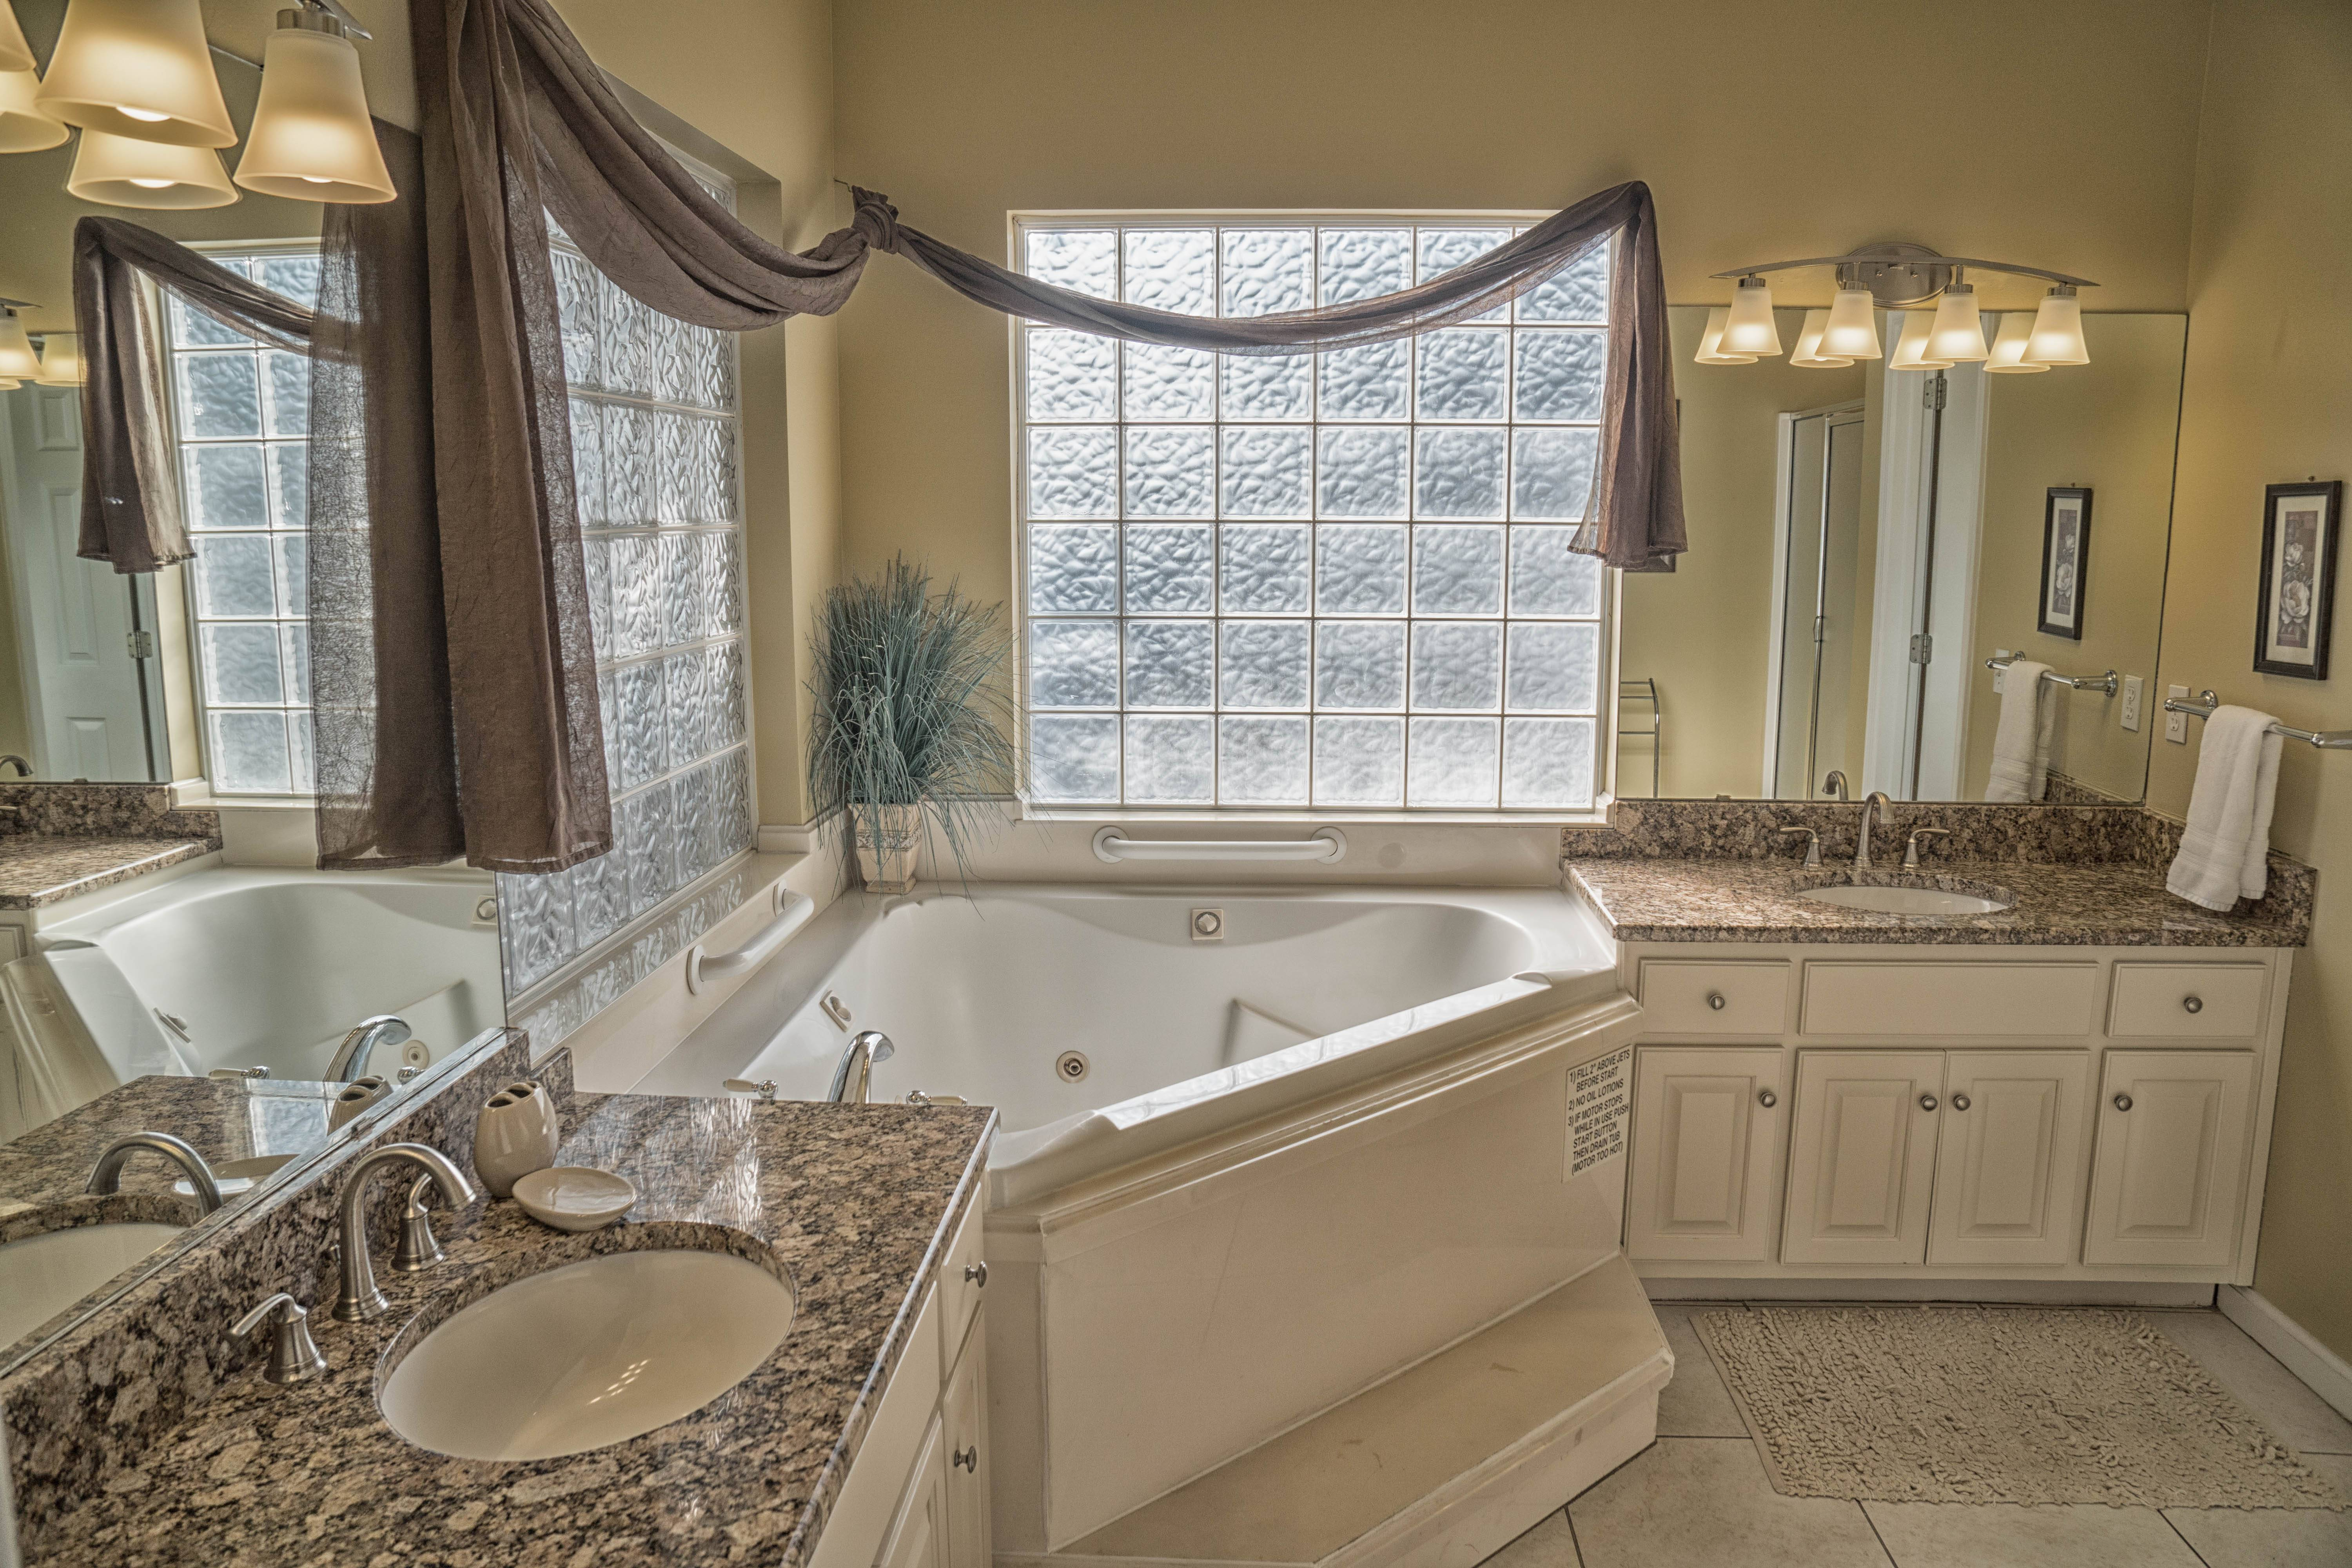 Newly renovated Bathroom with jetted tub and dual sinks